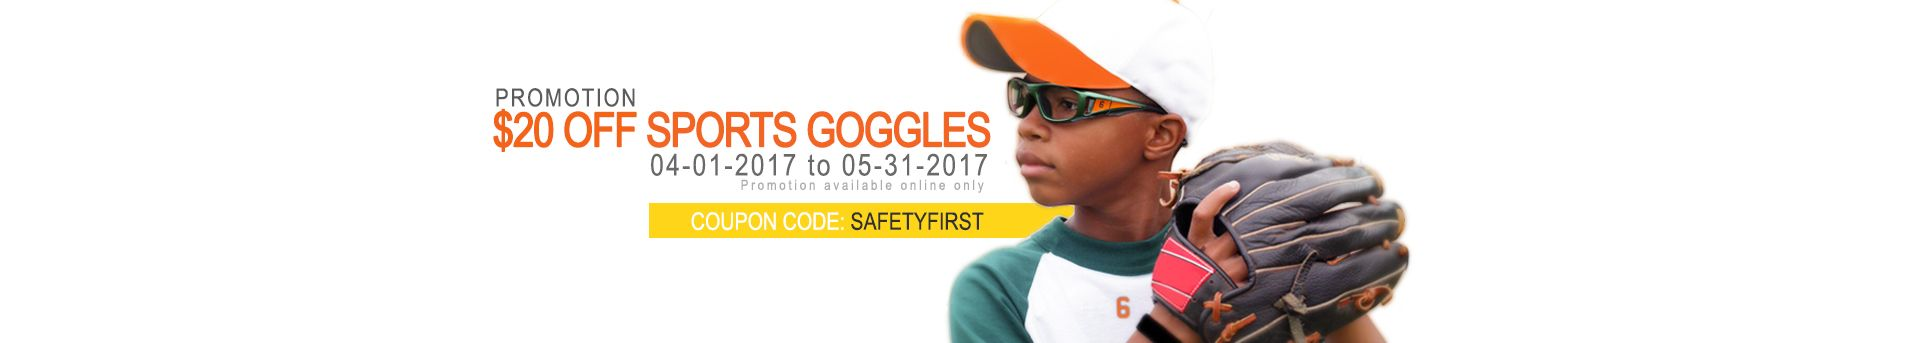 Safety First Promo